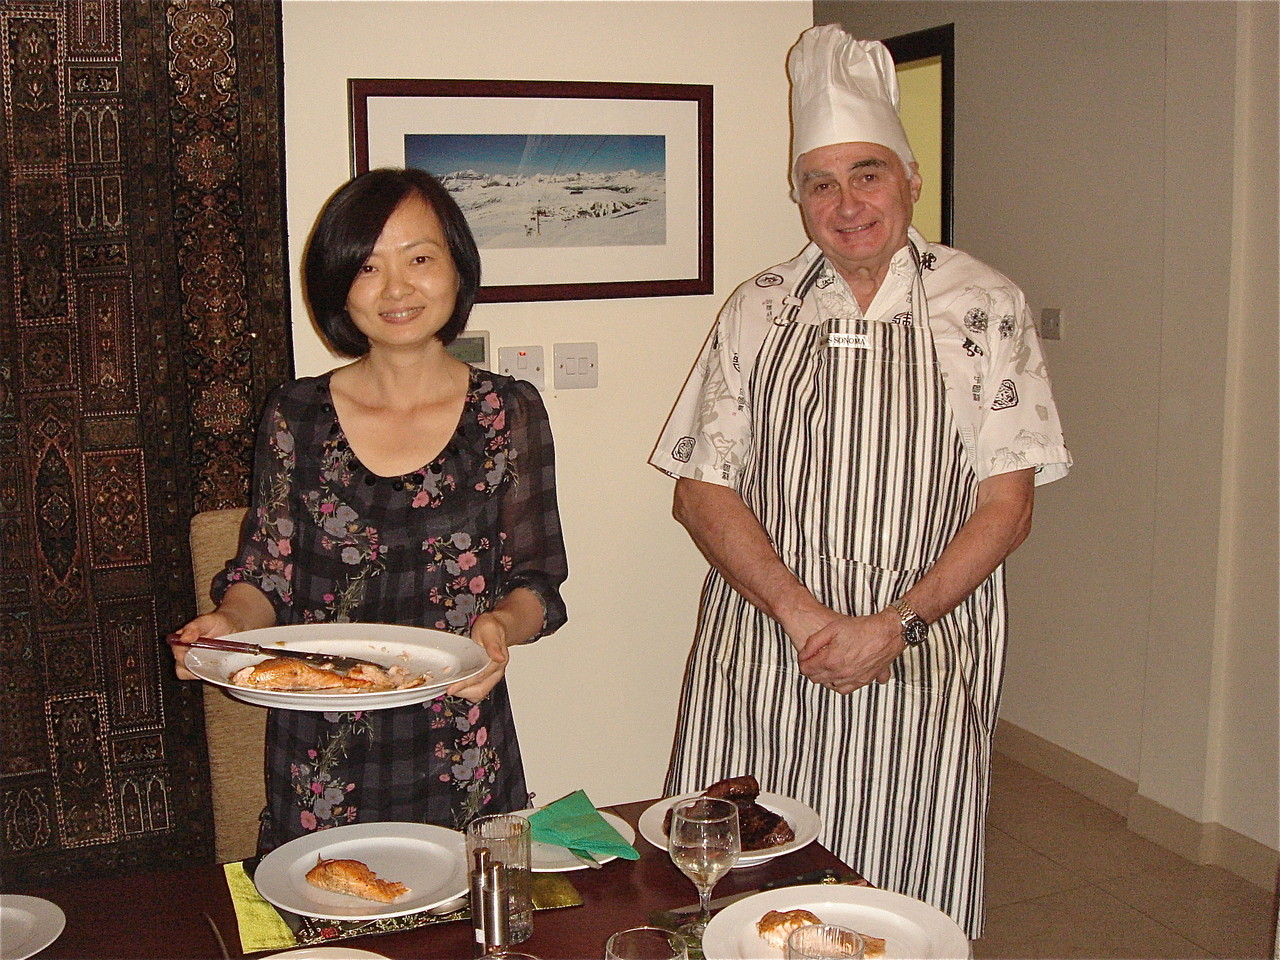 Hong Ding & Chris Triggle prepare dinner